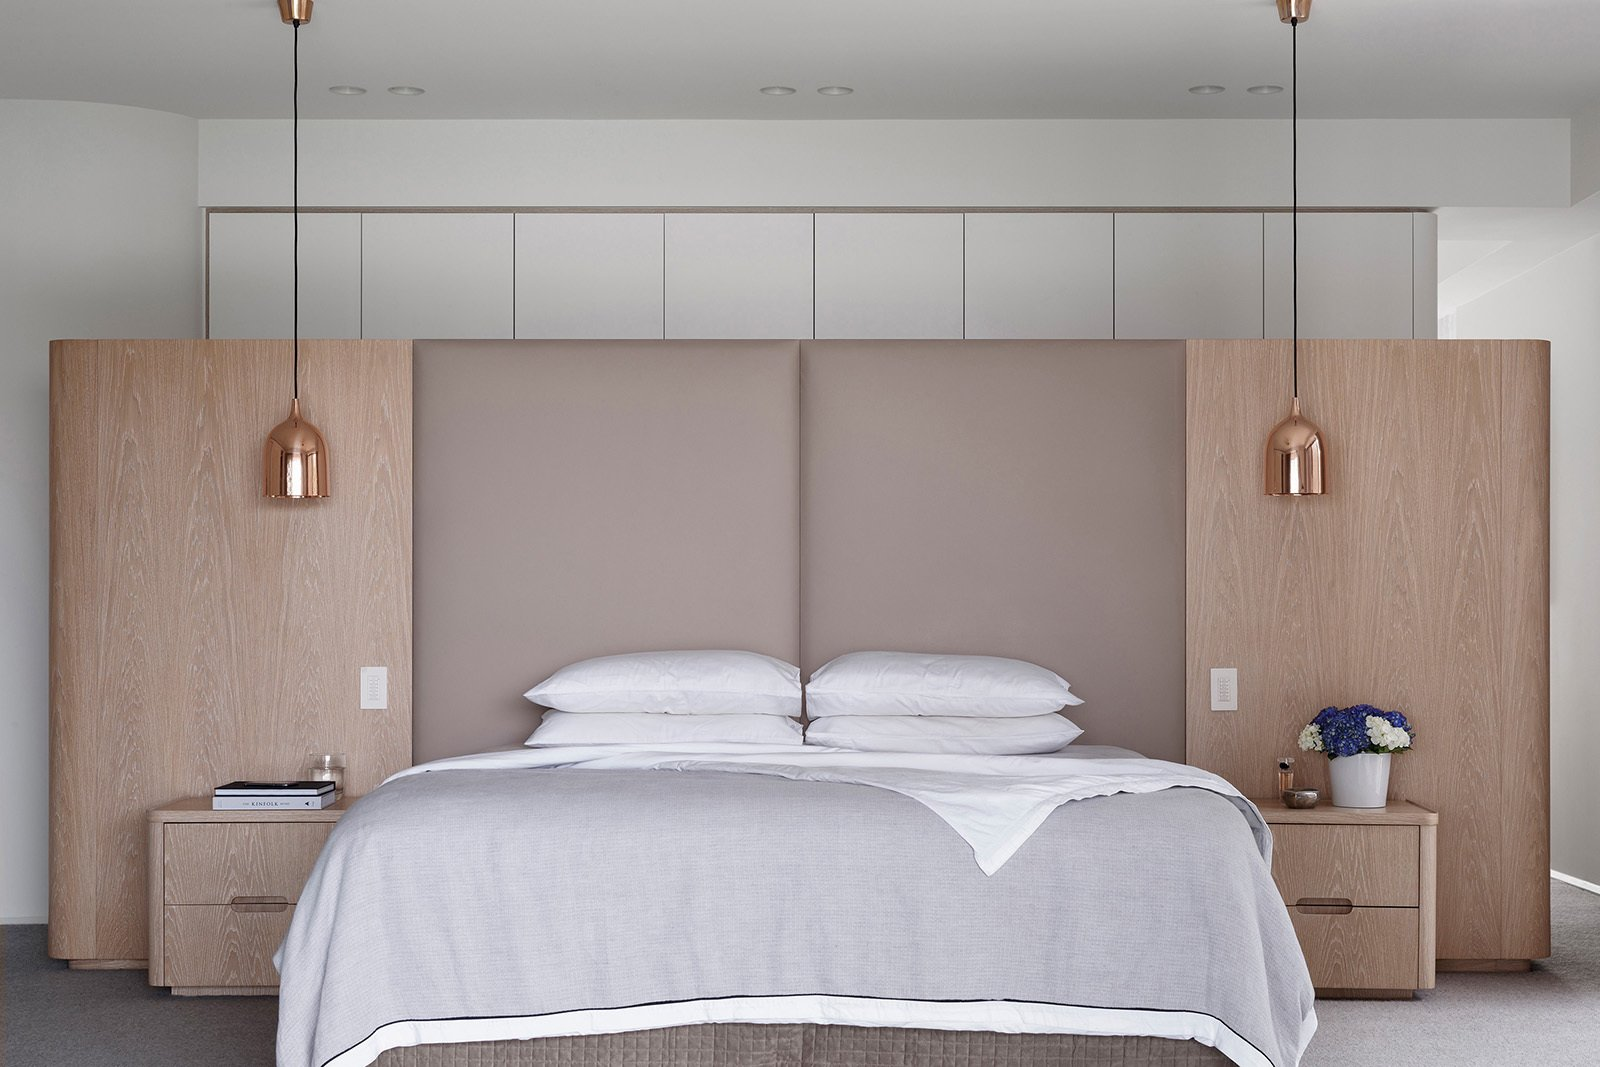 5 Bright Ideas for Bedroom Ceiling Lighting - Dwell